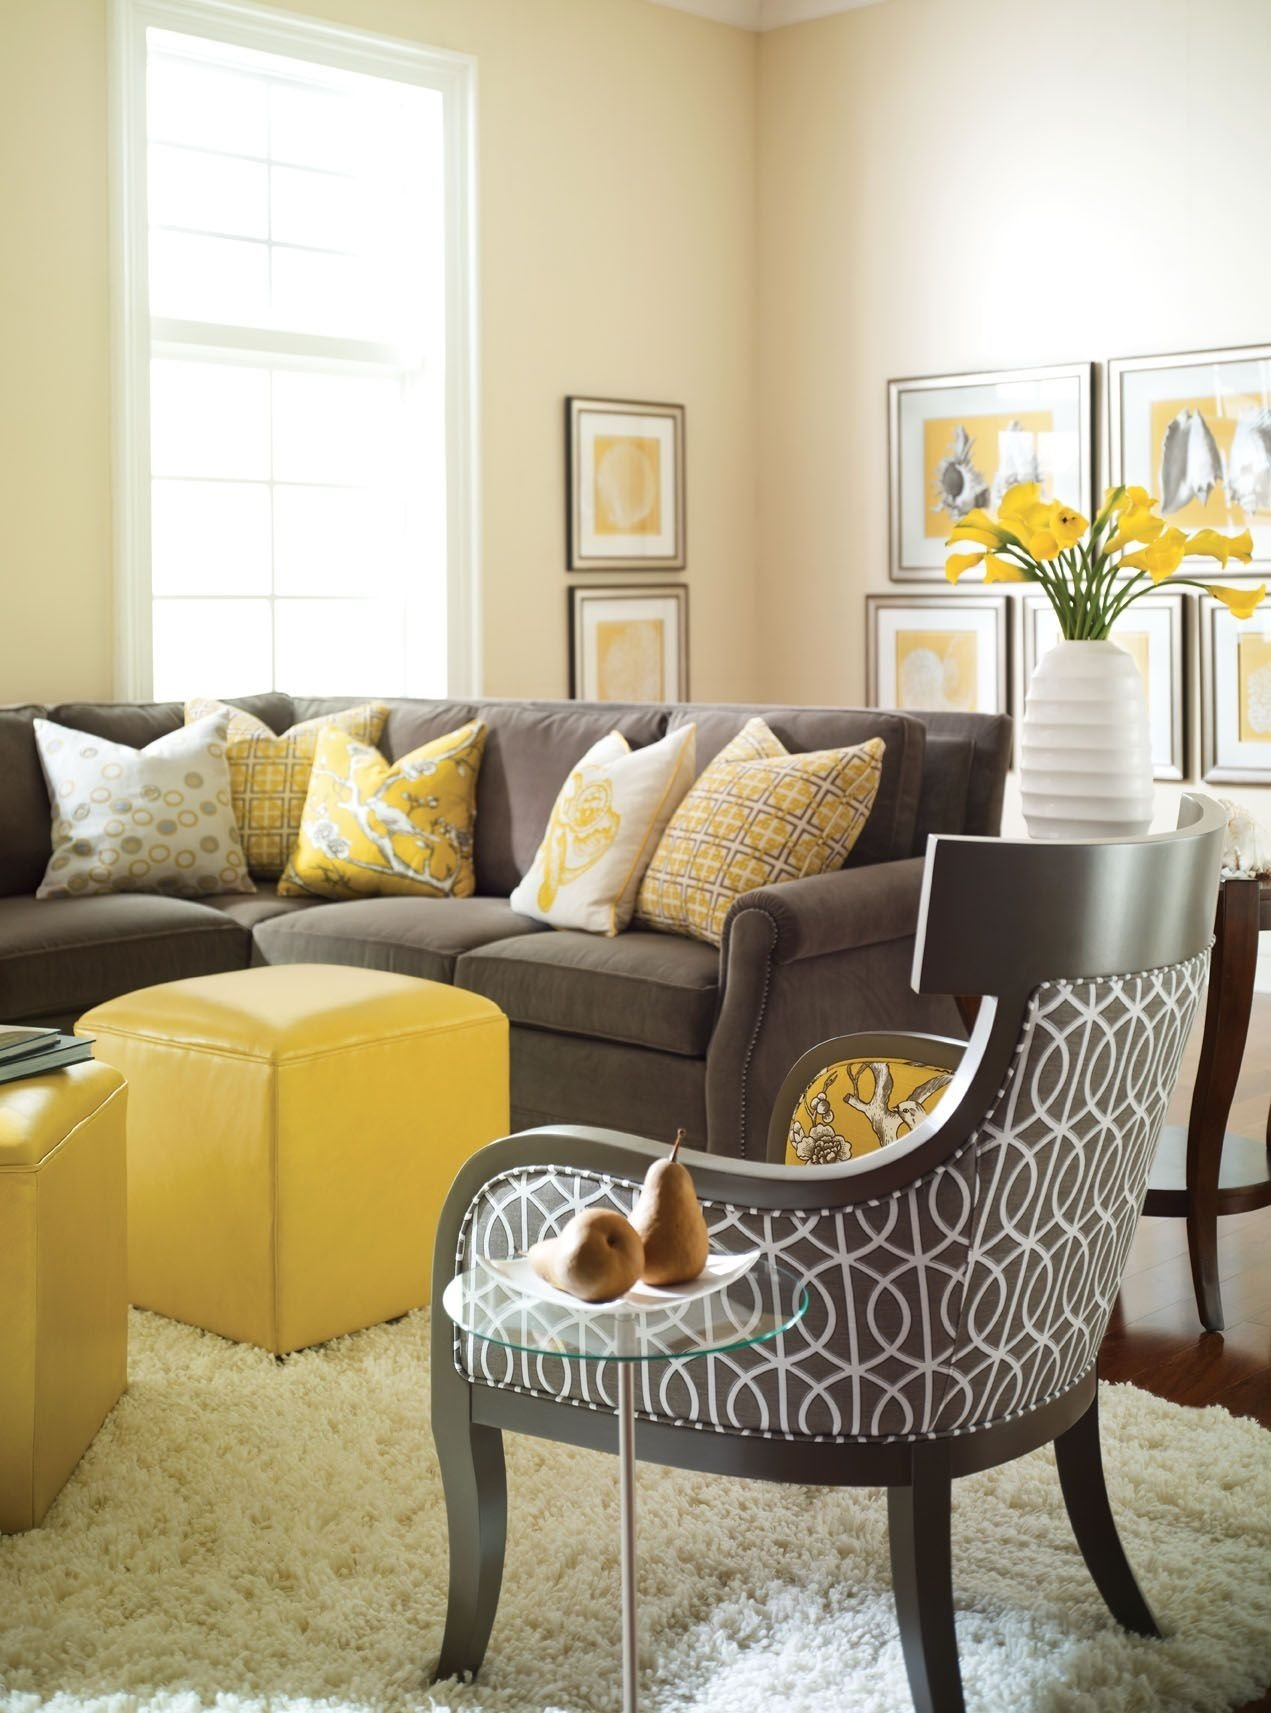 10 Beautiful Gray And Yellow Living Room Ideas tissus dameublement belles idees pour renover linterieur grey 2020